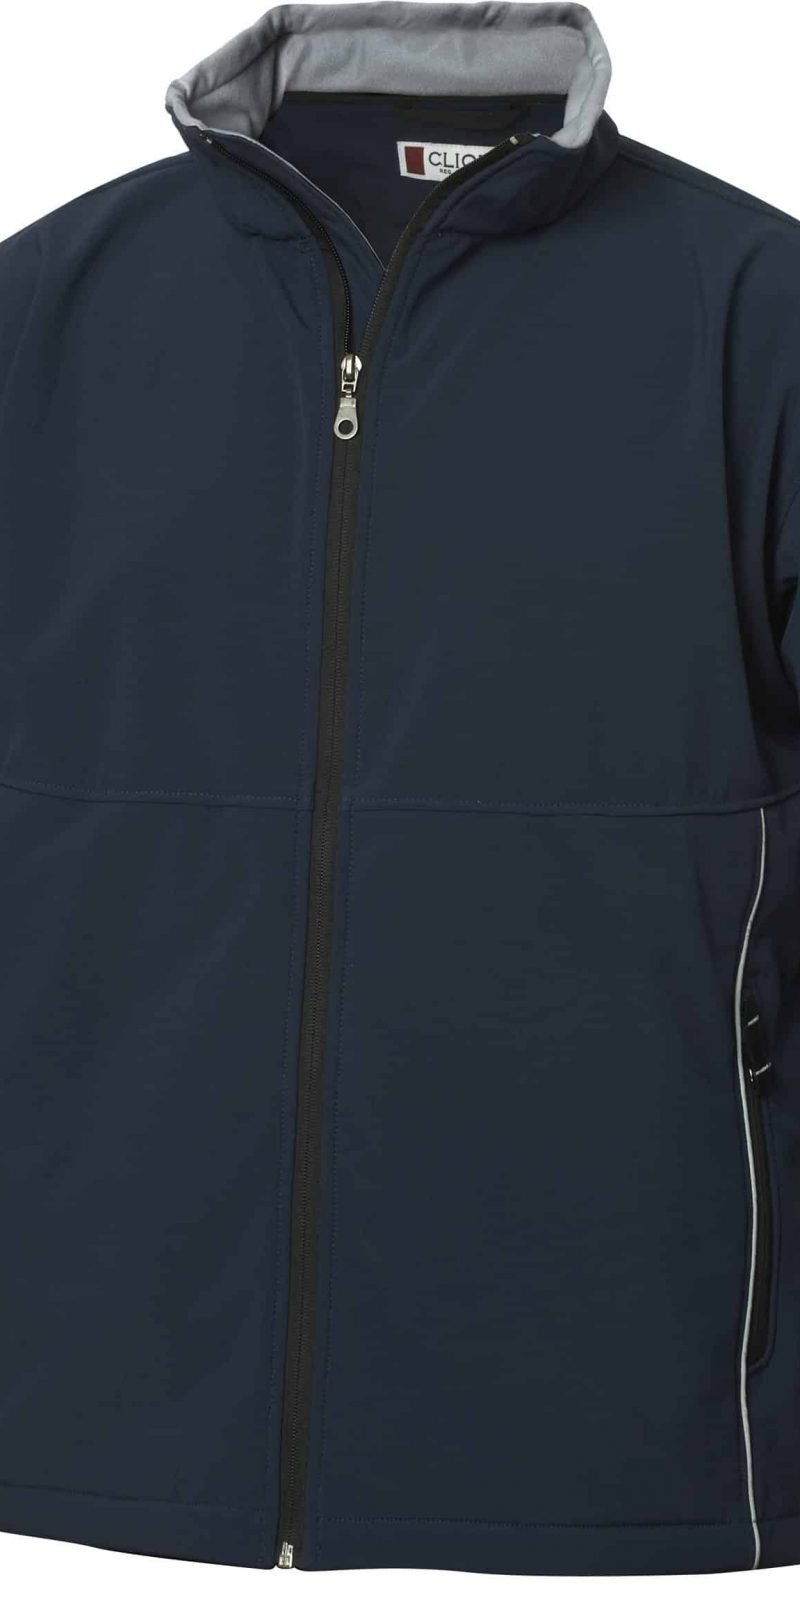 RSrnYC Men's Softshell Jacket